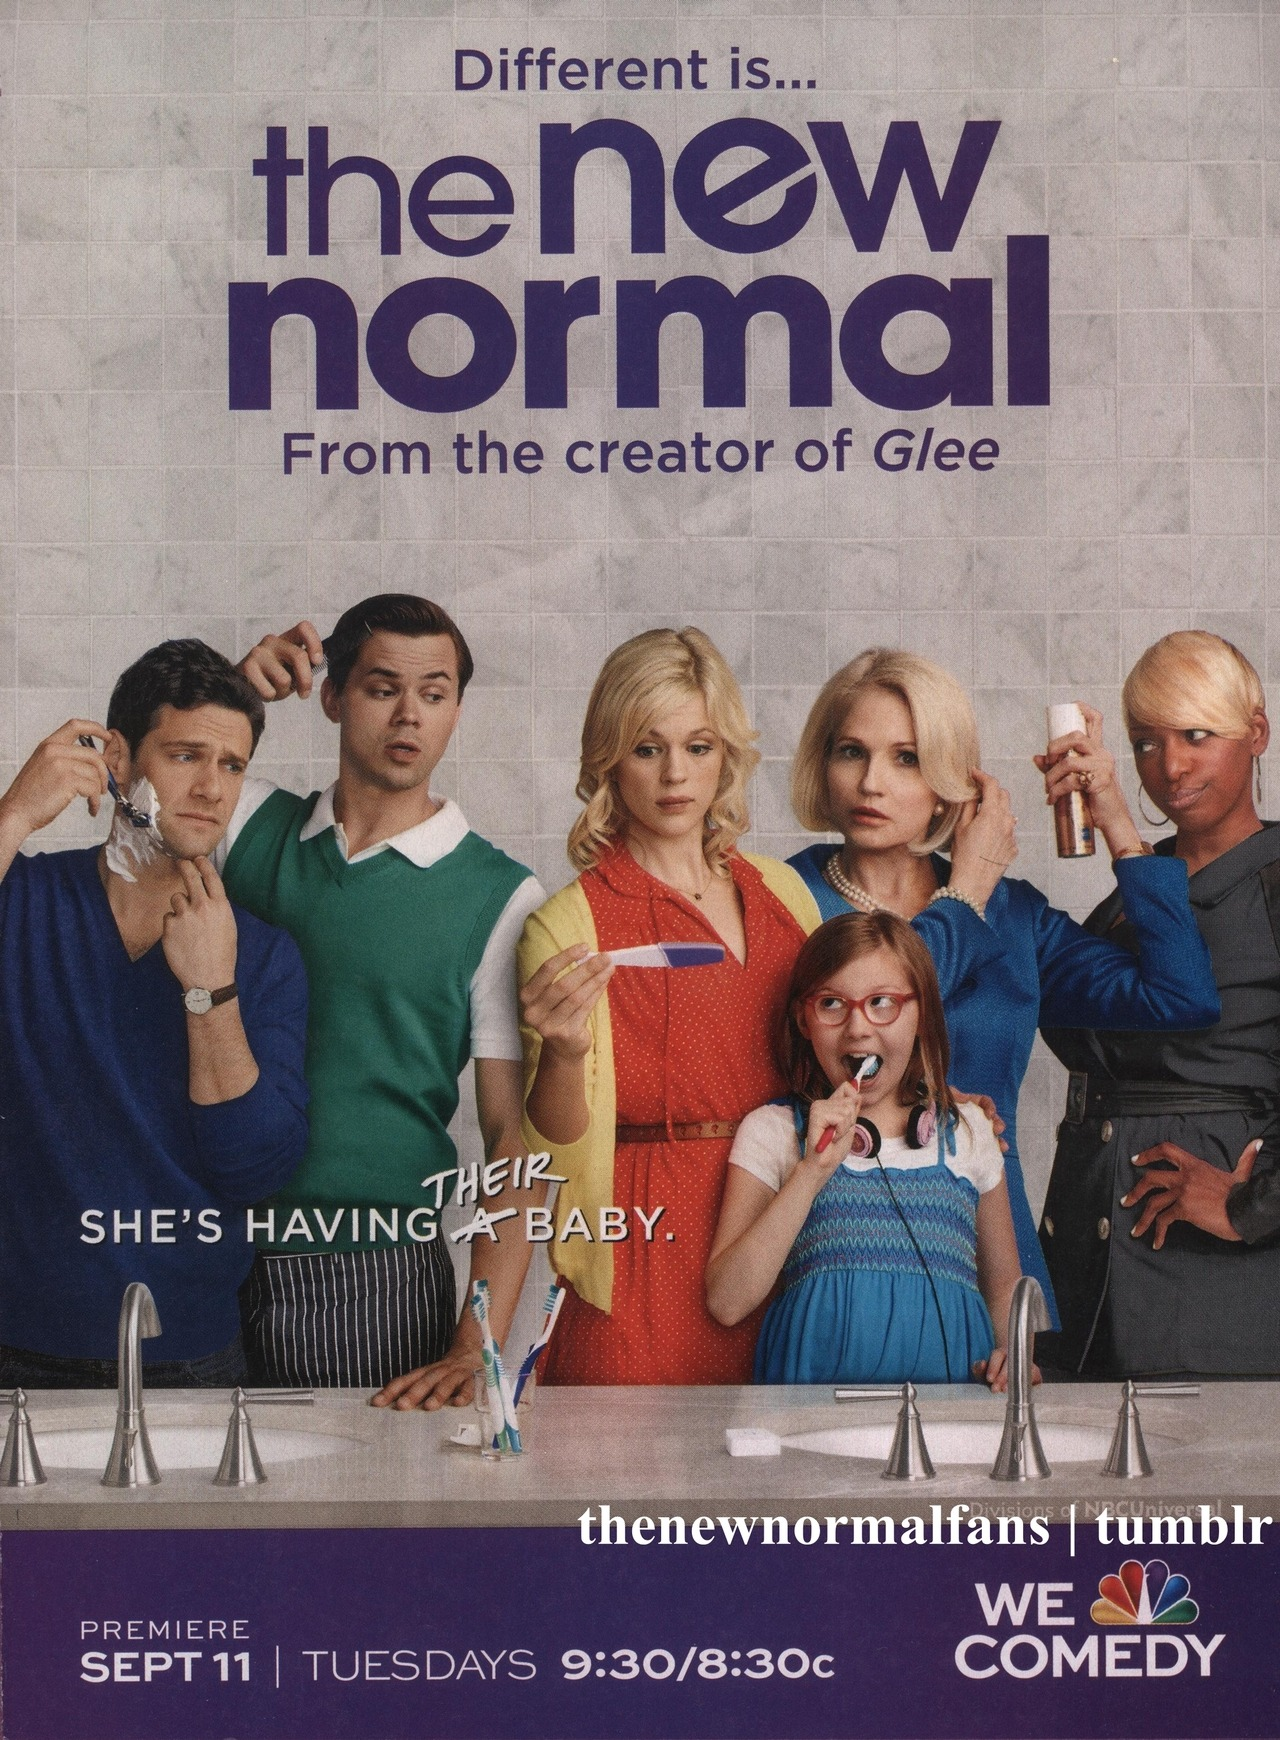 An ad for 'The New Normal' in the September 10 issue of In Touch Weekly